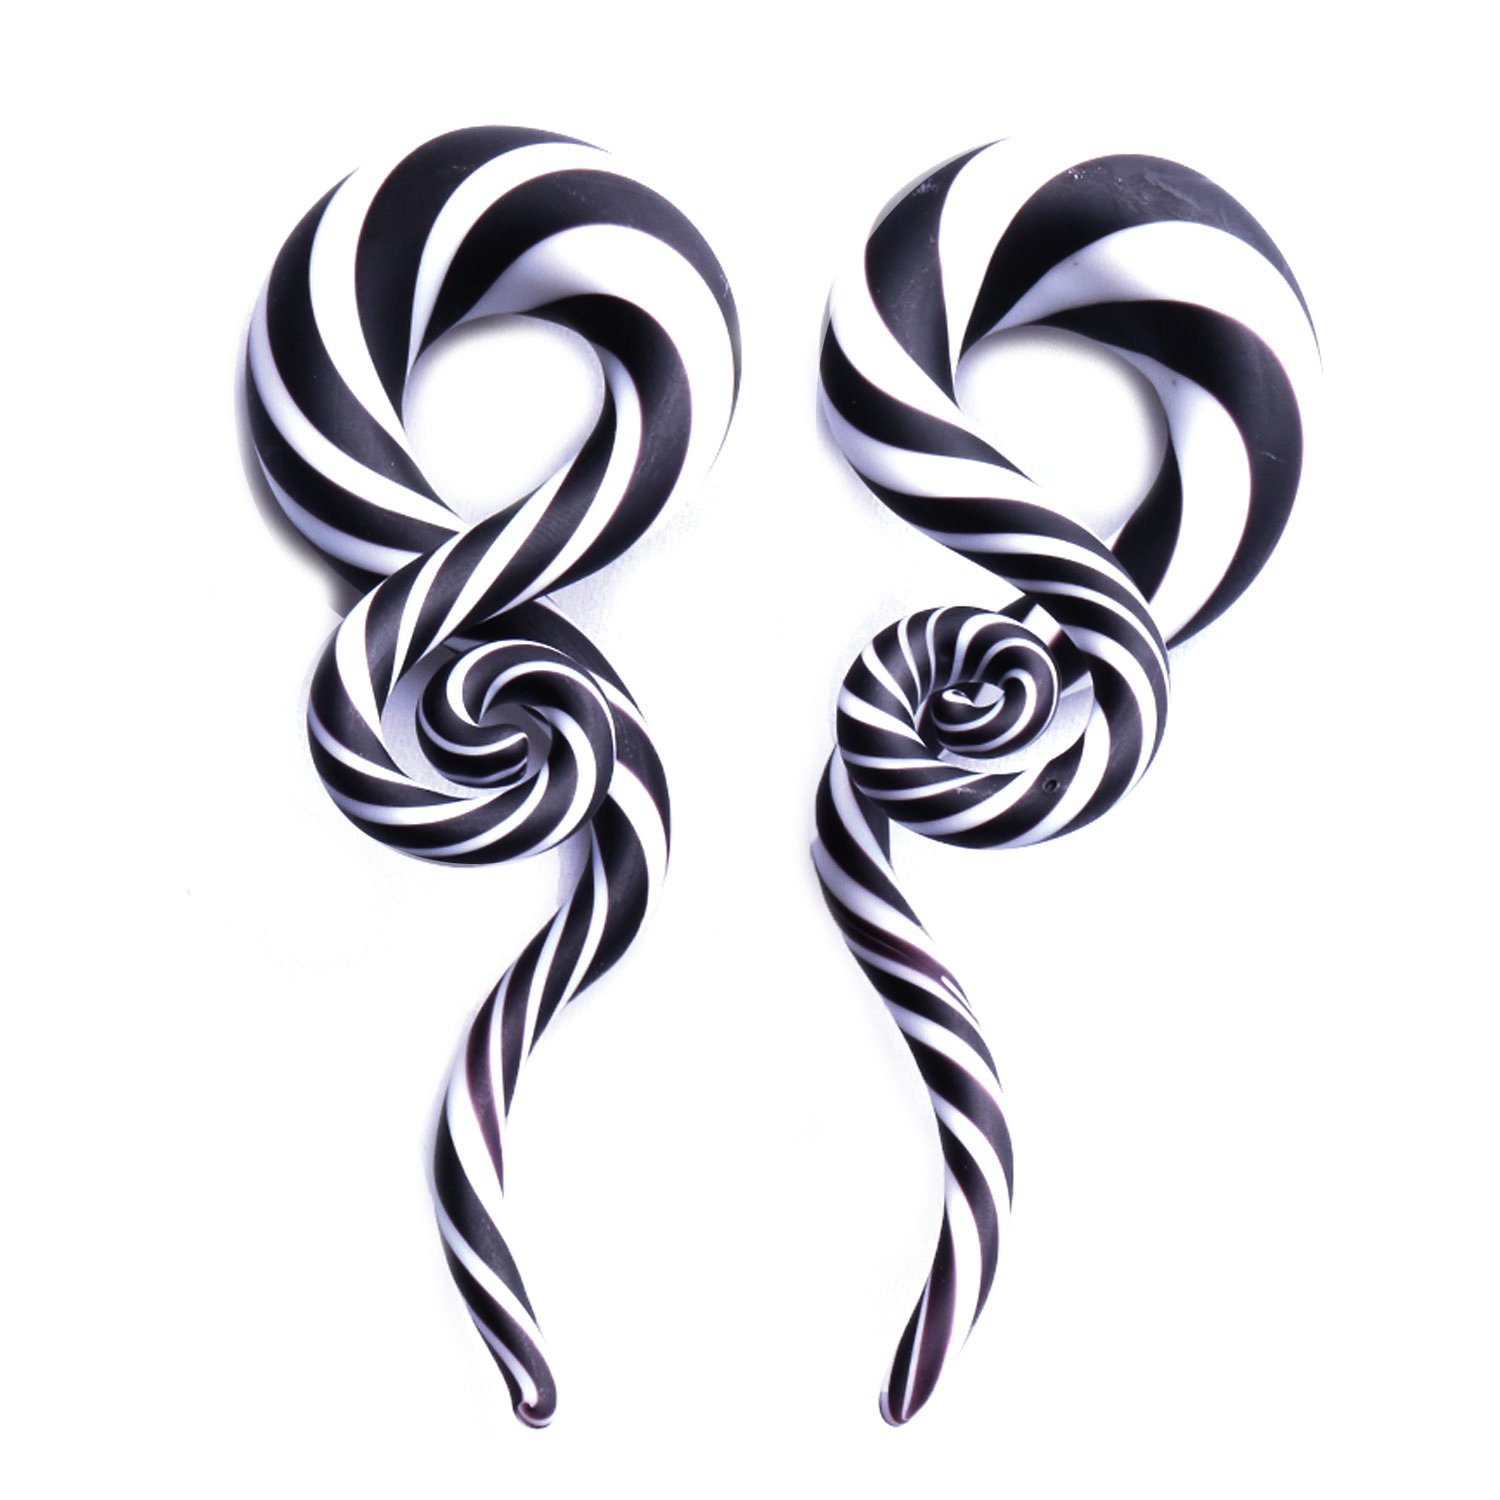 BodyJ4You Glass Taper Swirl Spiral Zebra Stripes Plugs Ear Gauges Treble Hanger 9/16-14mm Stretcher 2PCS TP7088-14mm